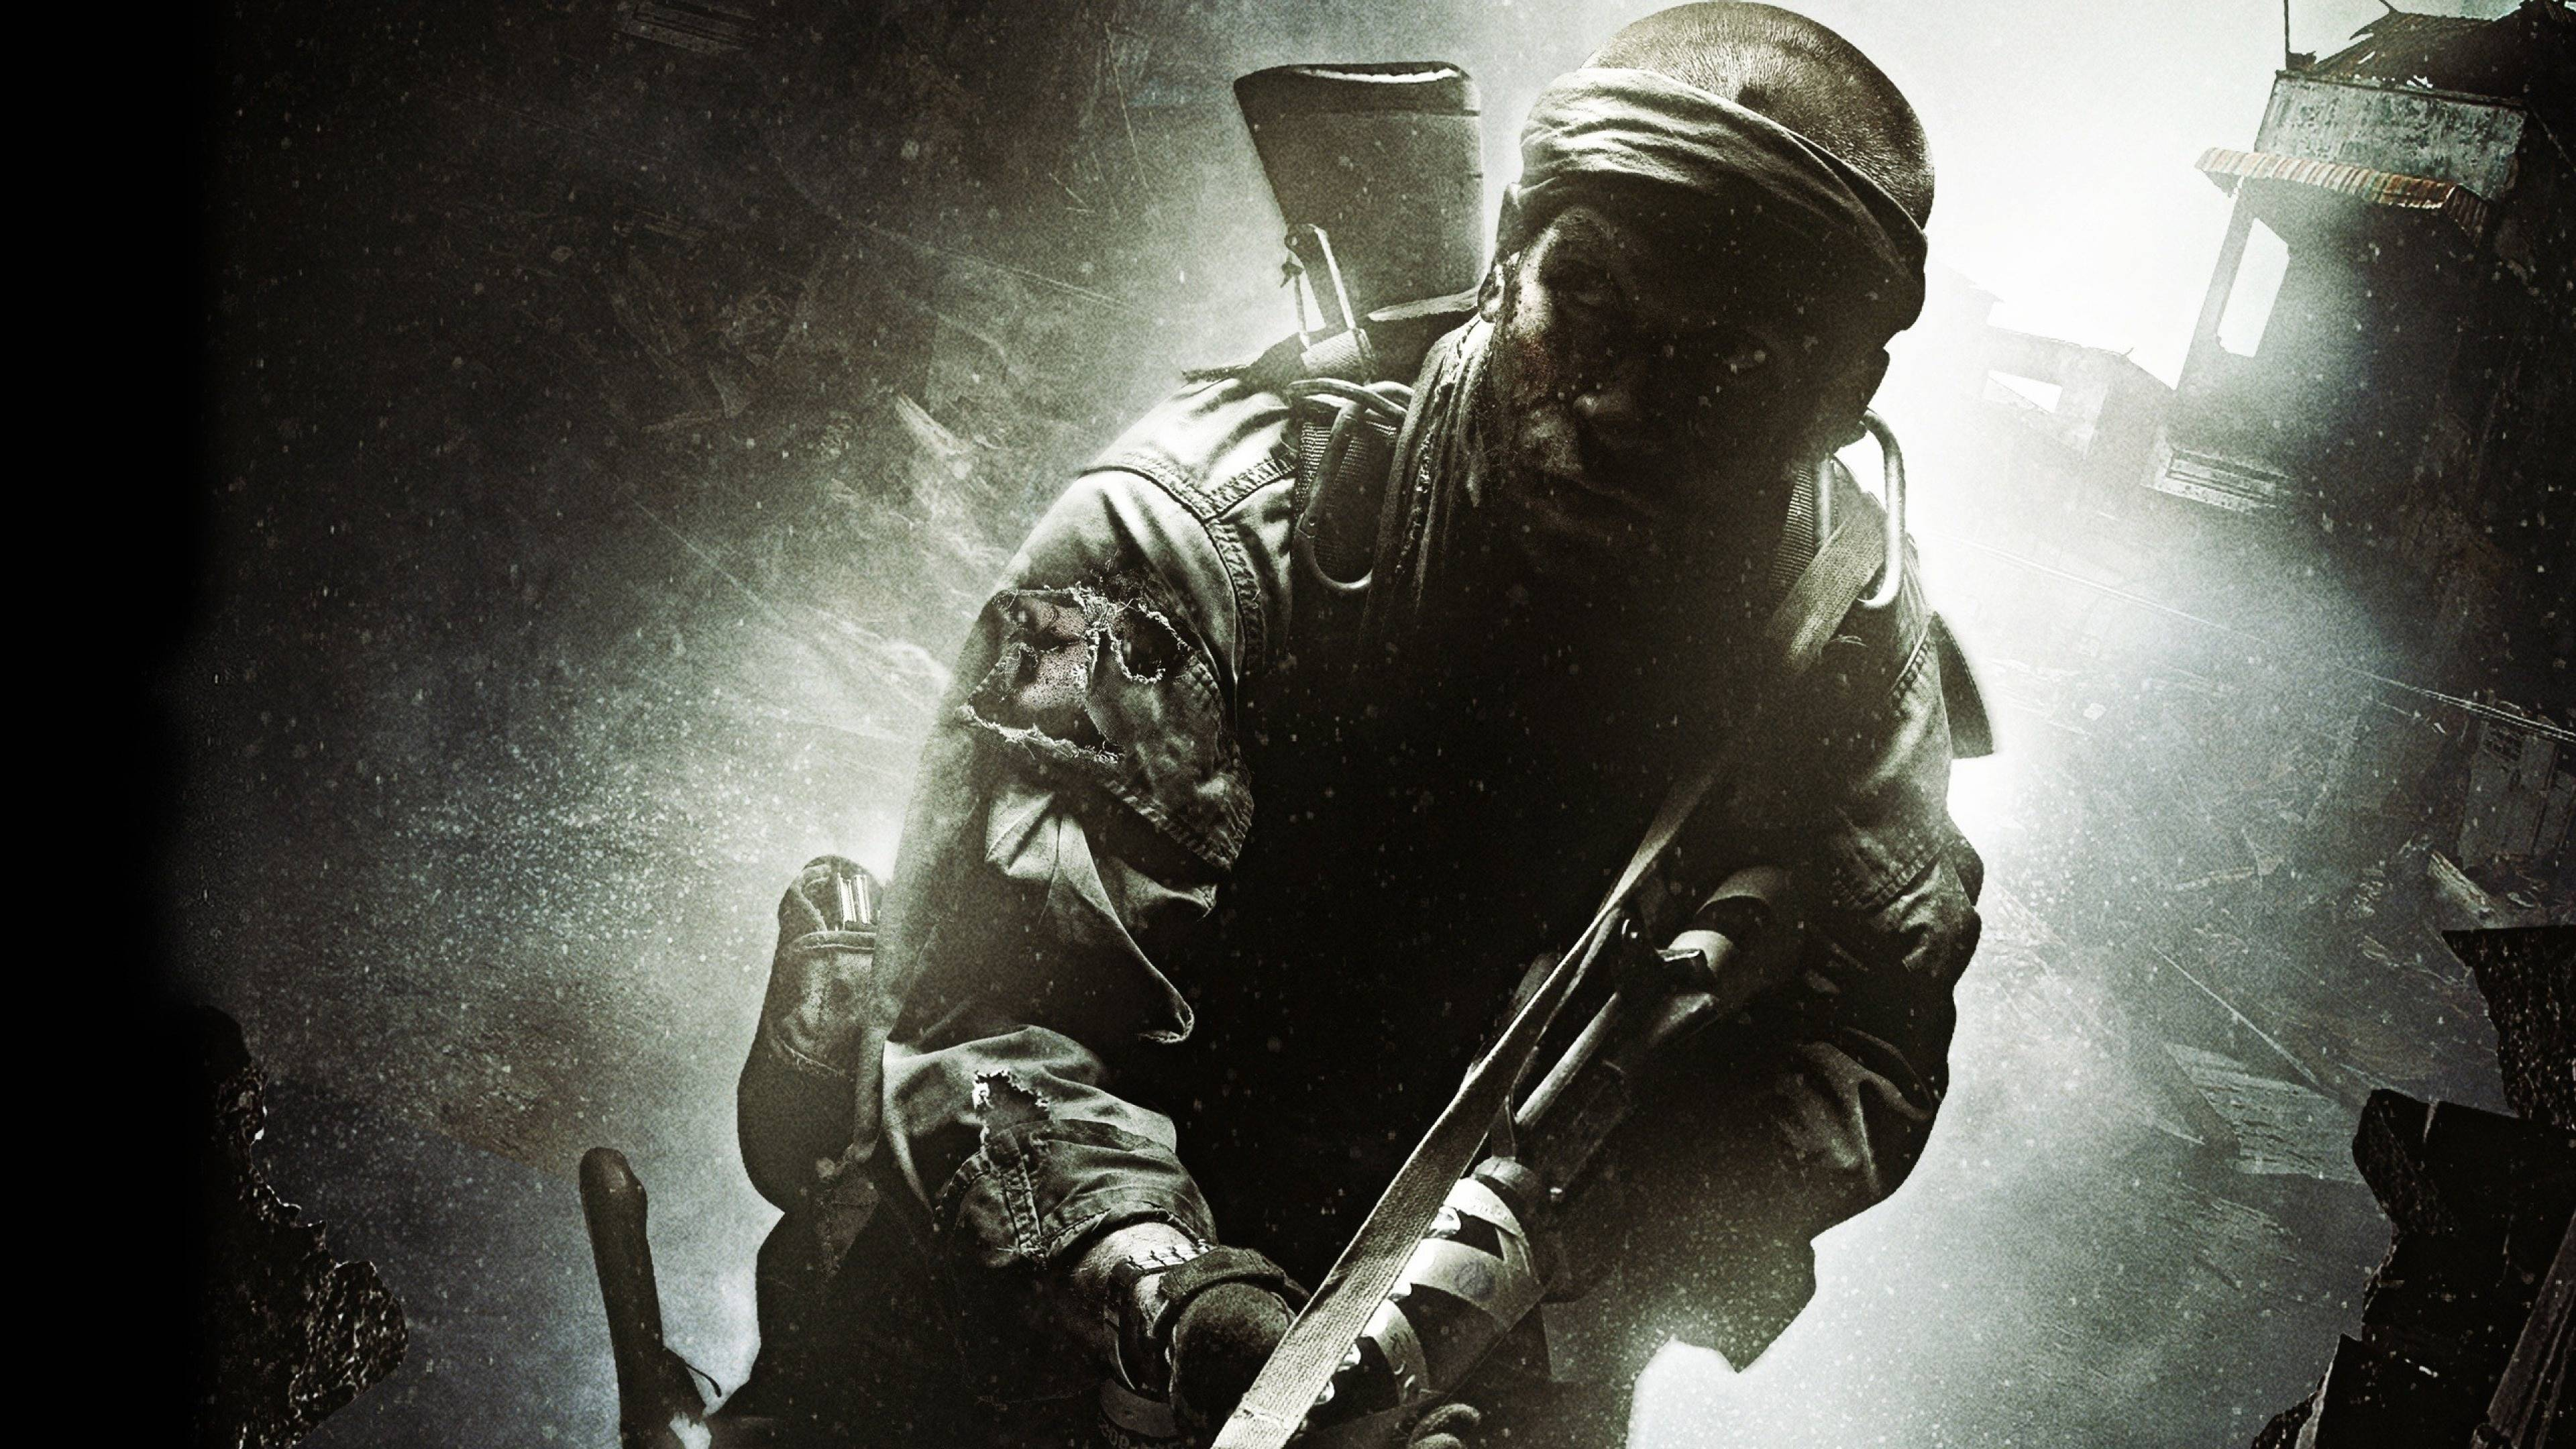 Call of duty ghost 2016 wallpapers wallpaper cave - Cod ww2 4k pc ...